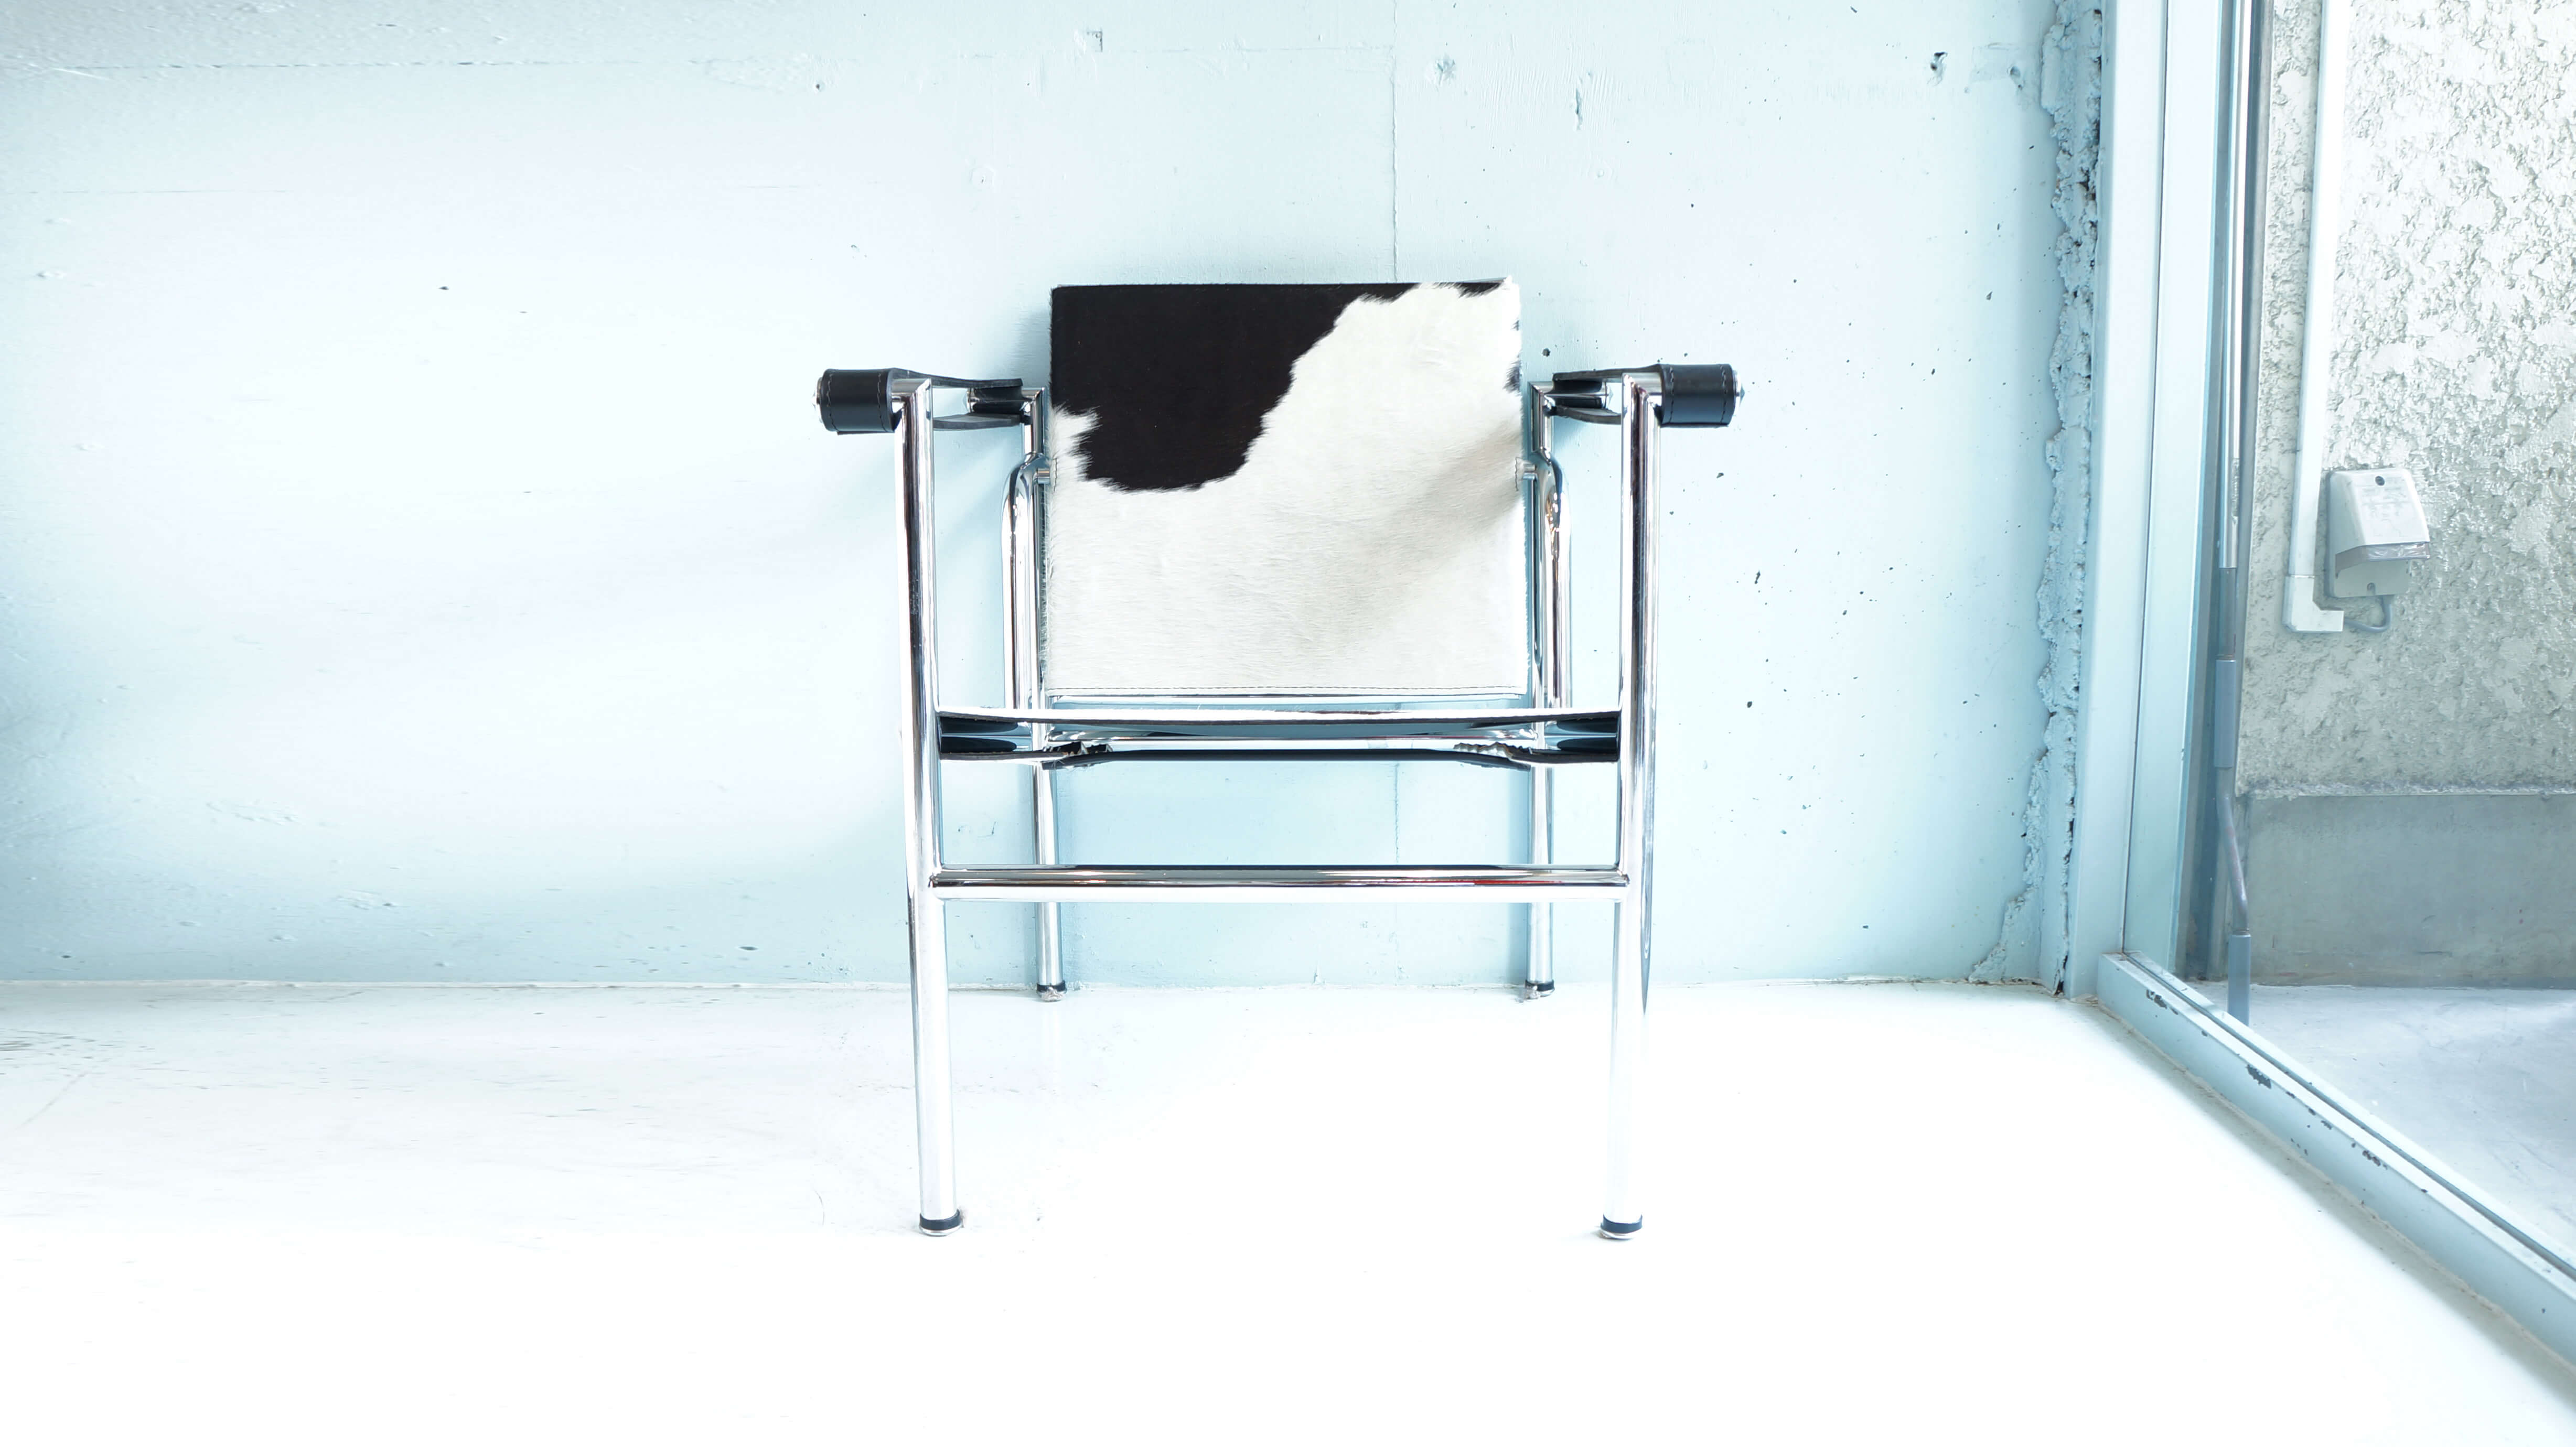 C1 Sling chair design by Le Corbusier / スリングチェア バスキュランチェア デザイナーズ